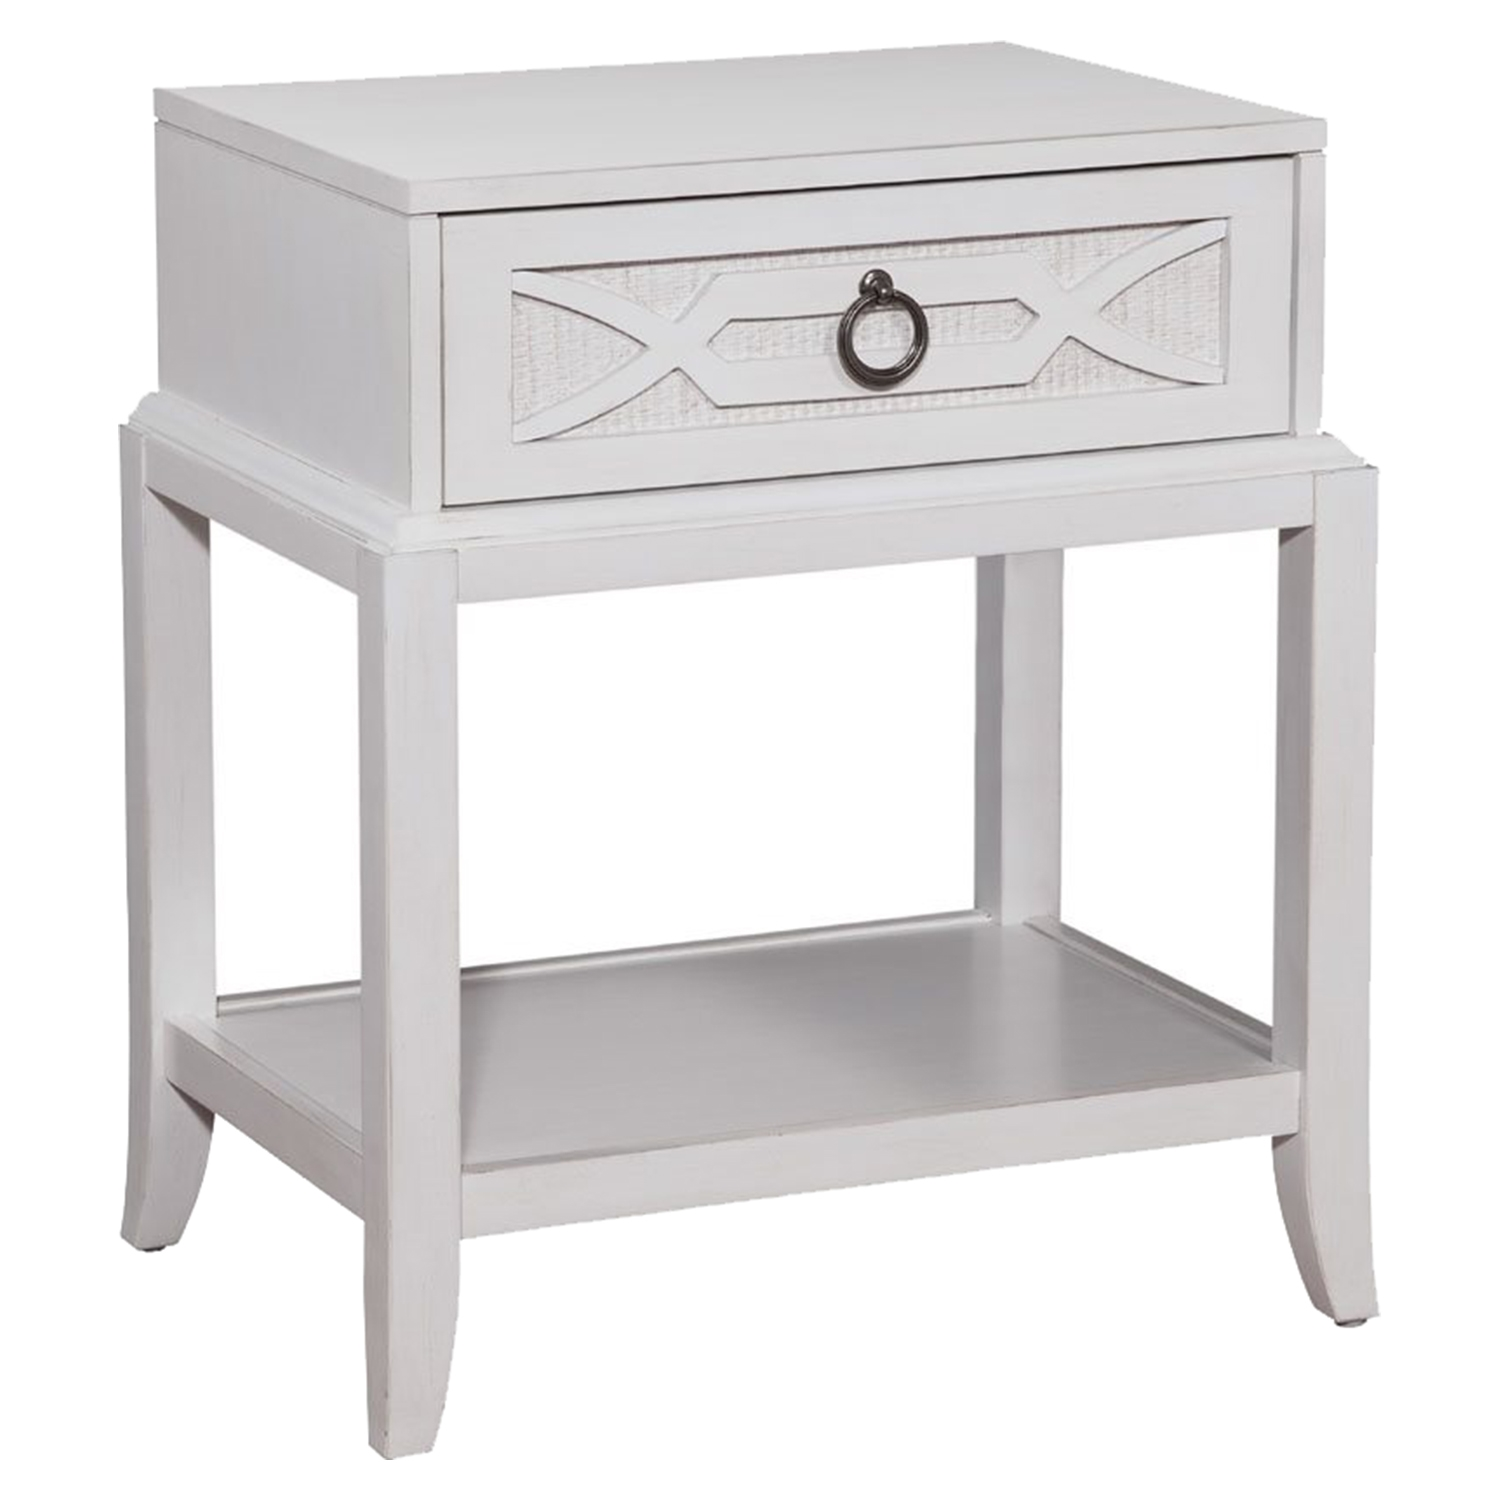 Grand Haven Single Drawer Night Table - White Lace - AW-6410-410